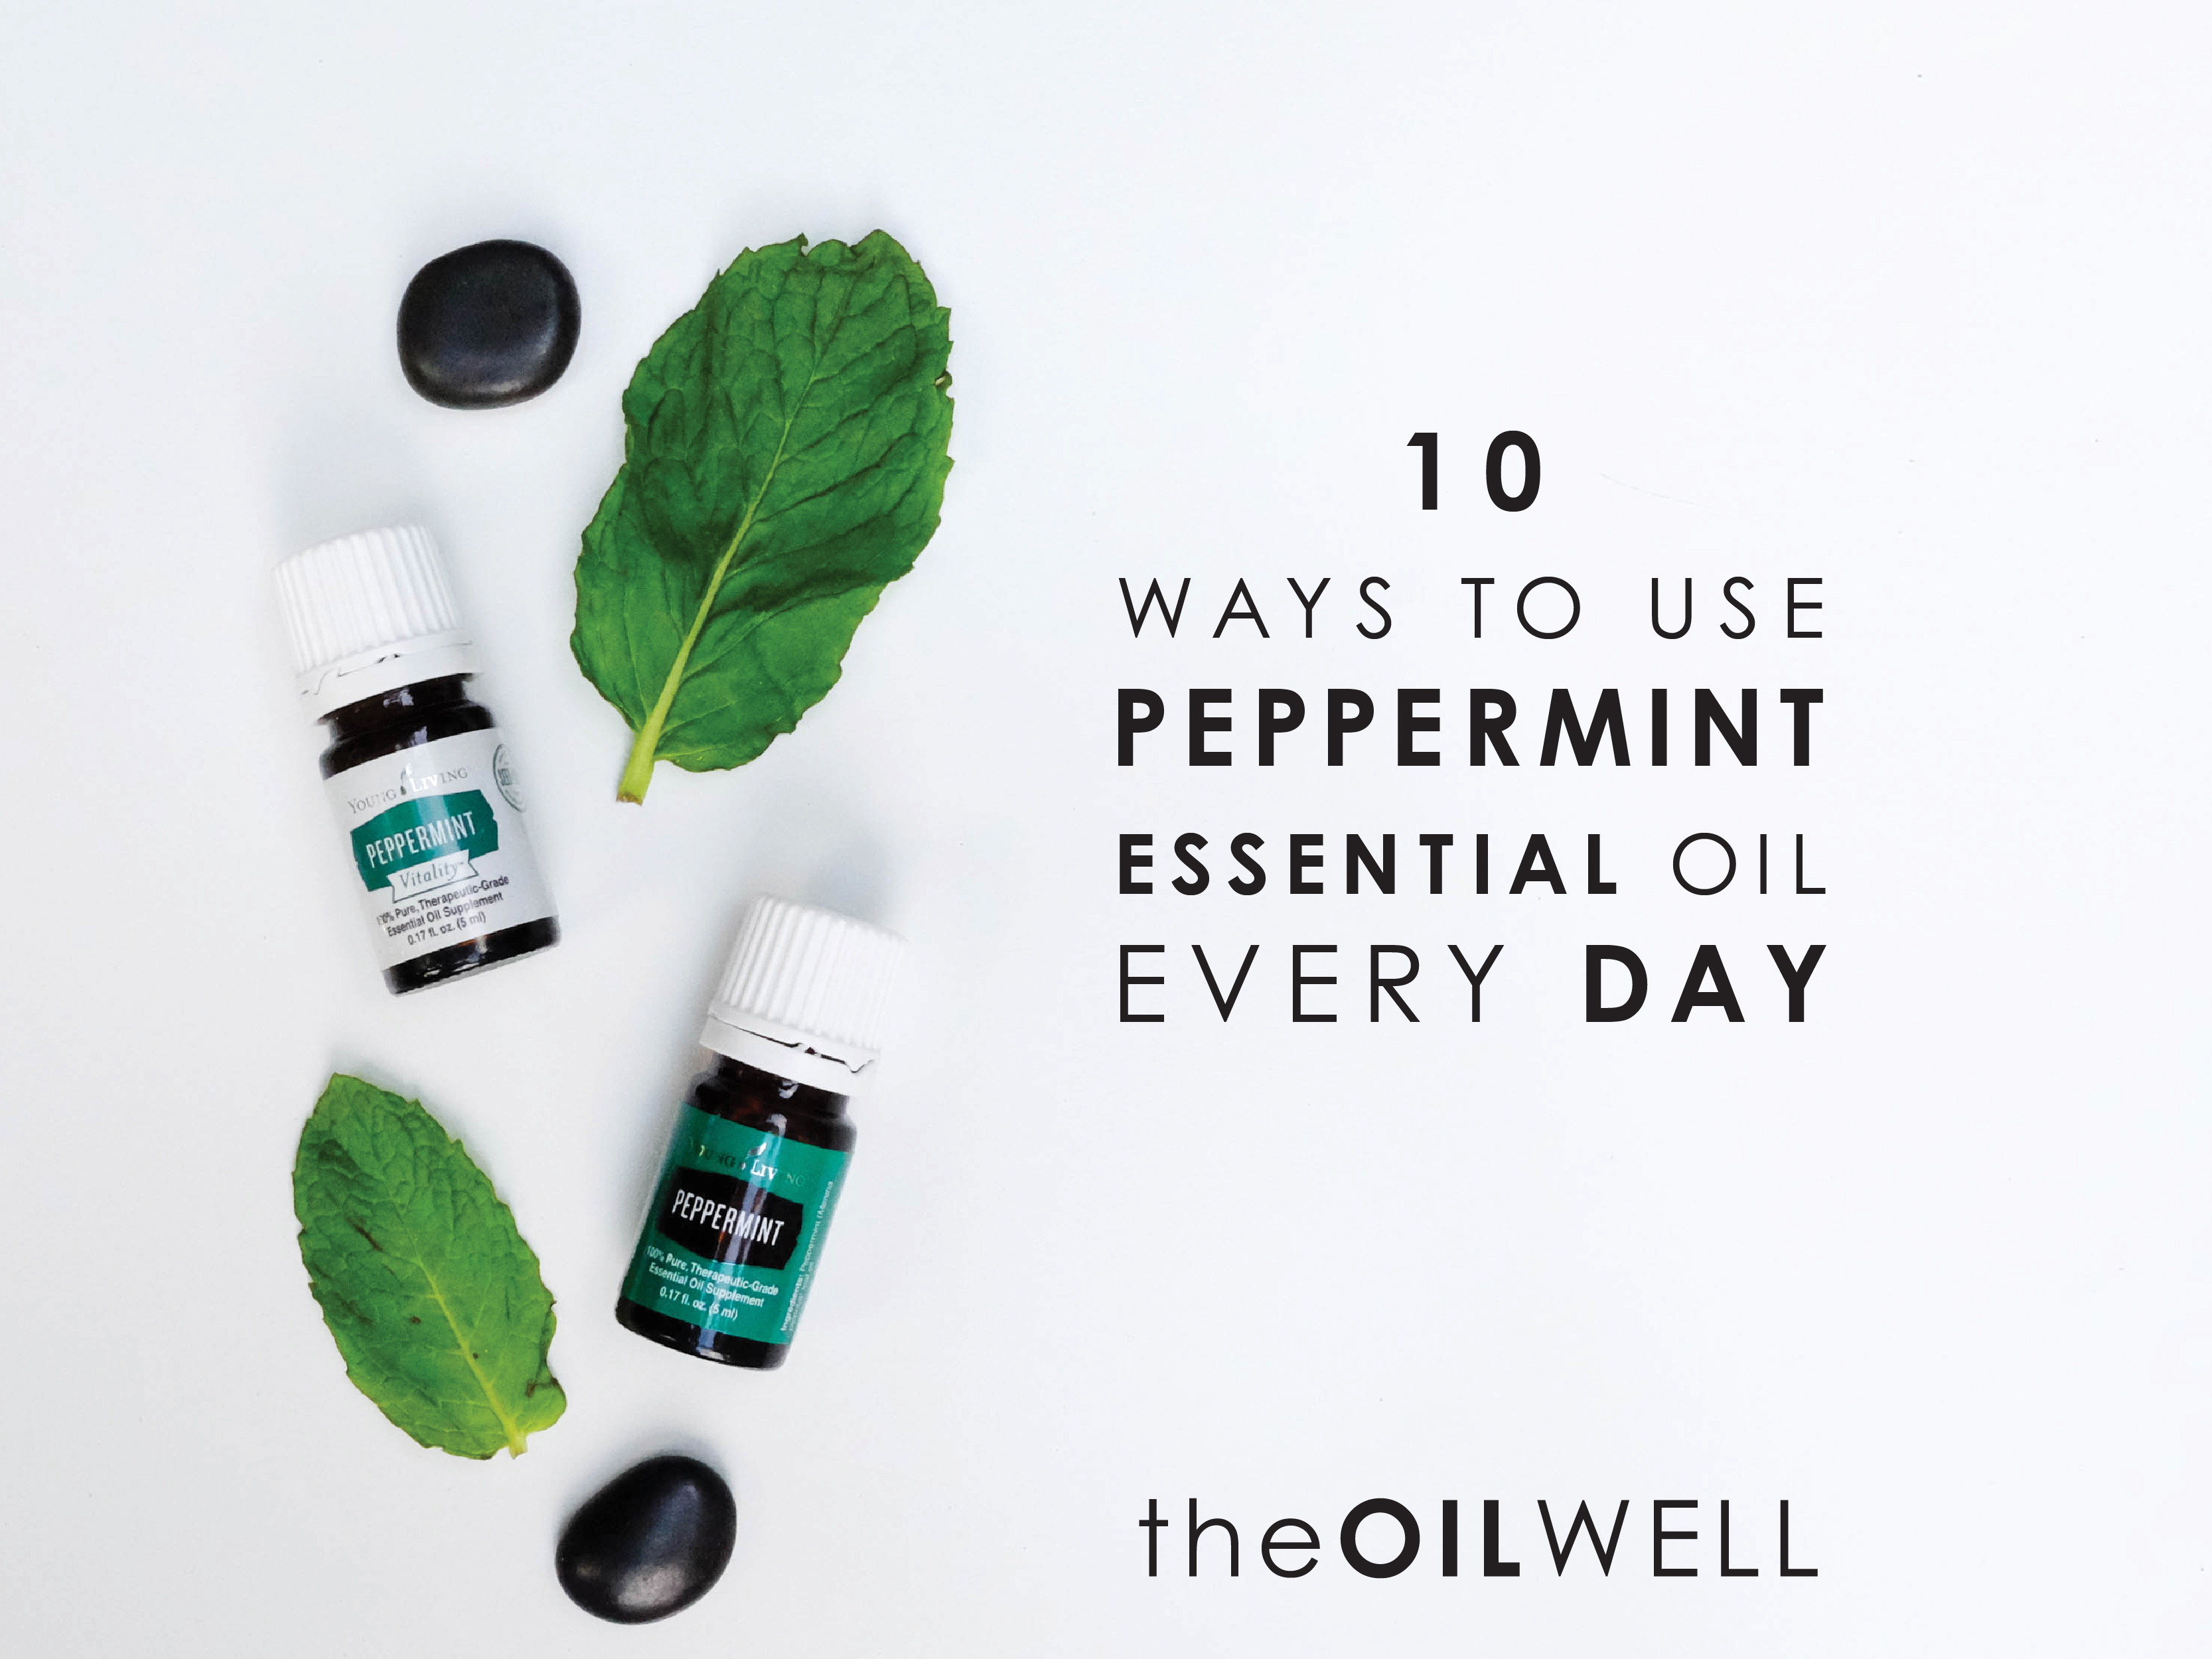 10 Common Uses for Peppermint Essential Oil